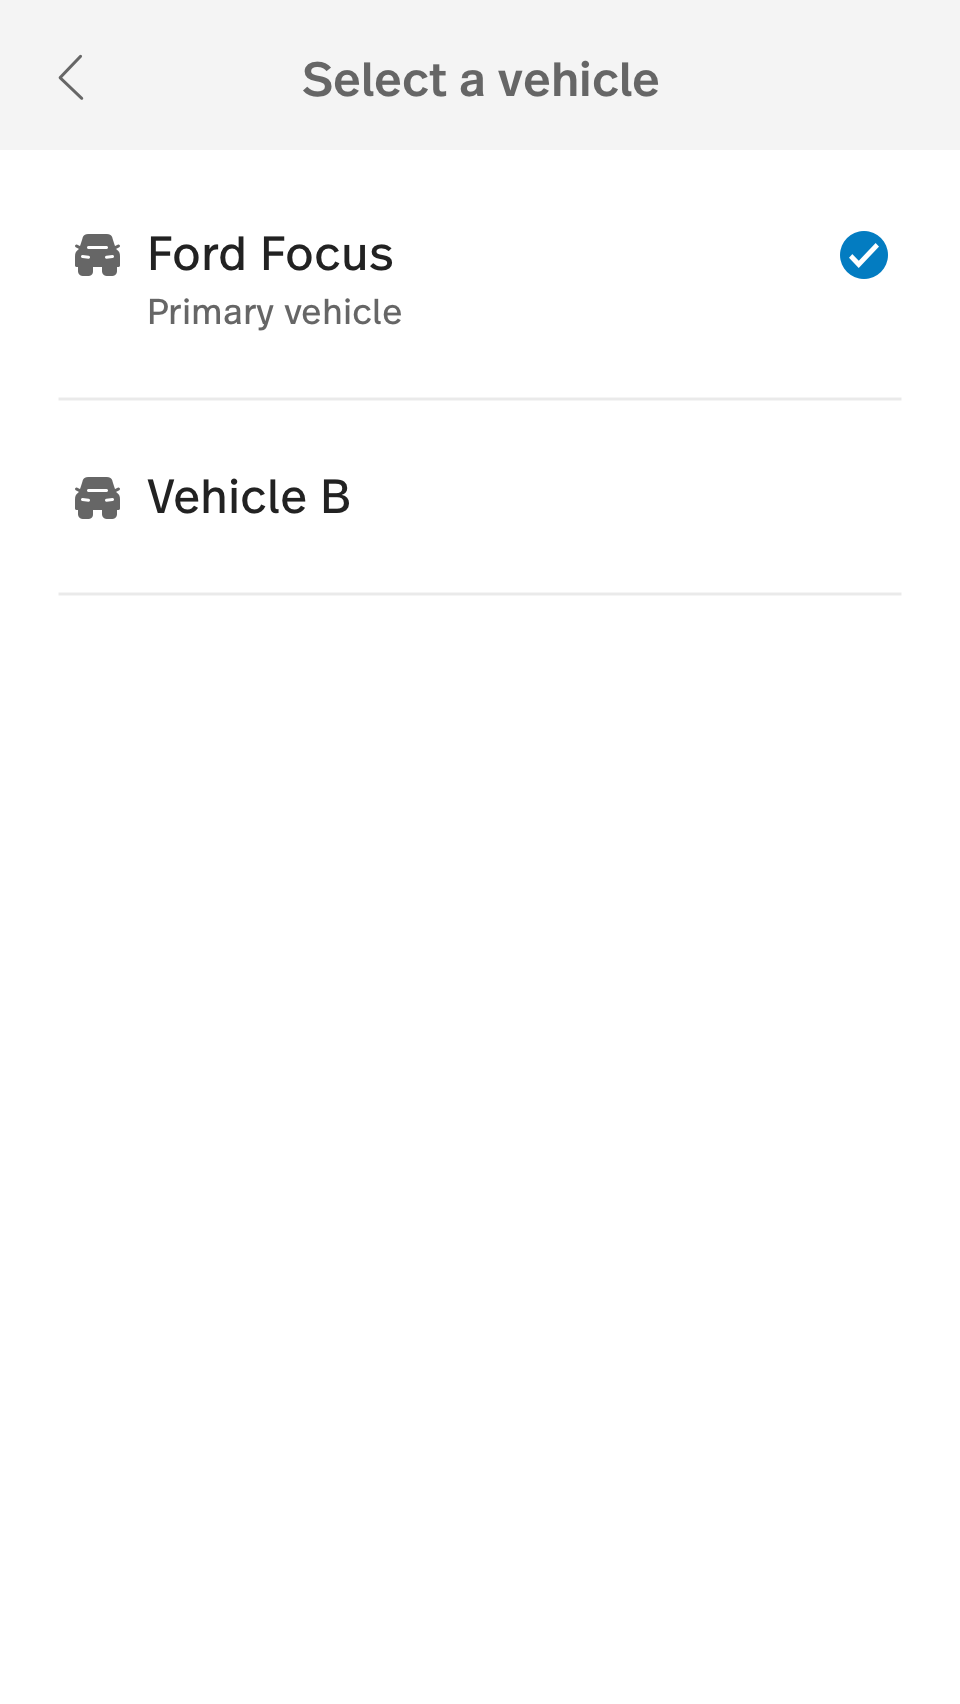 This image shows the vehicle list.